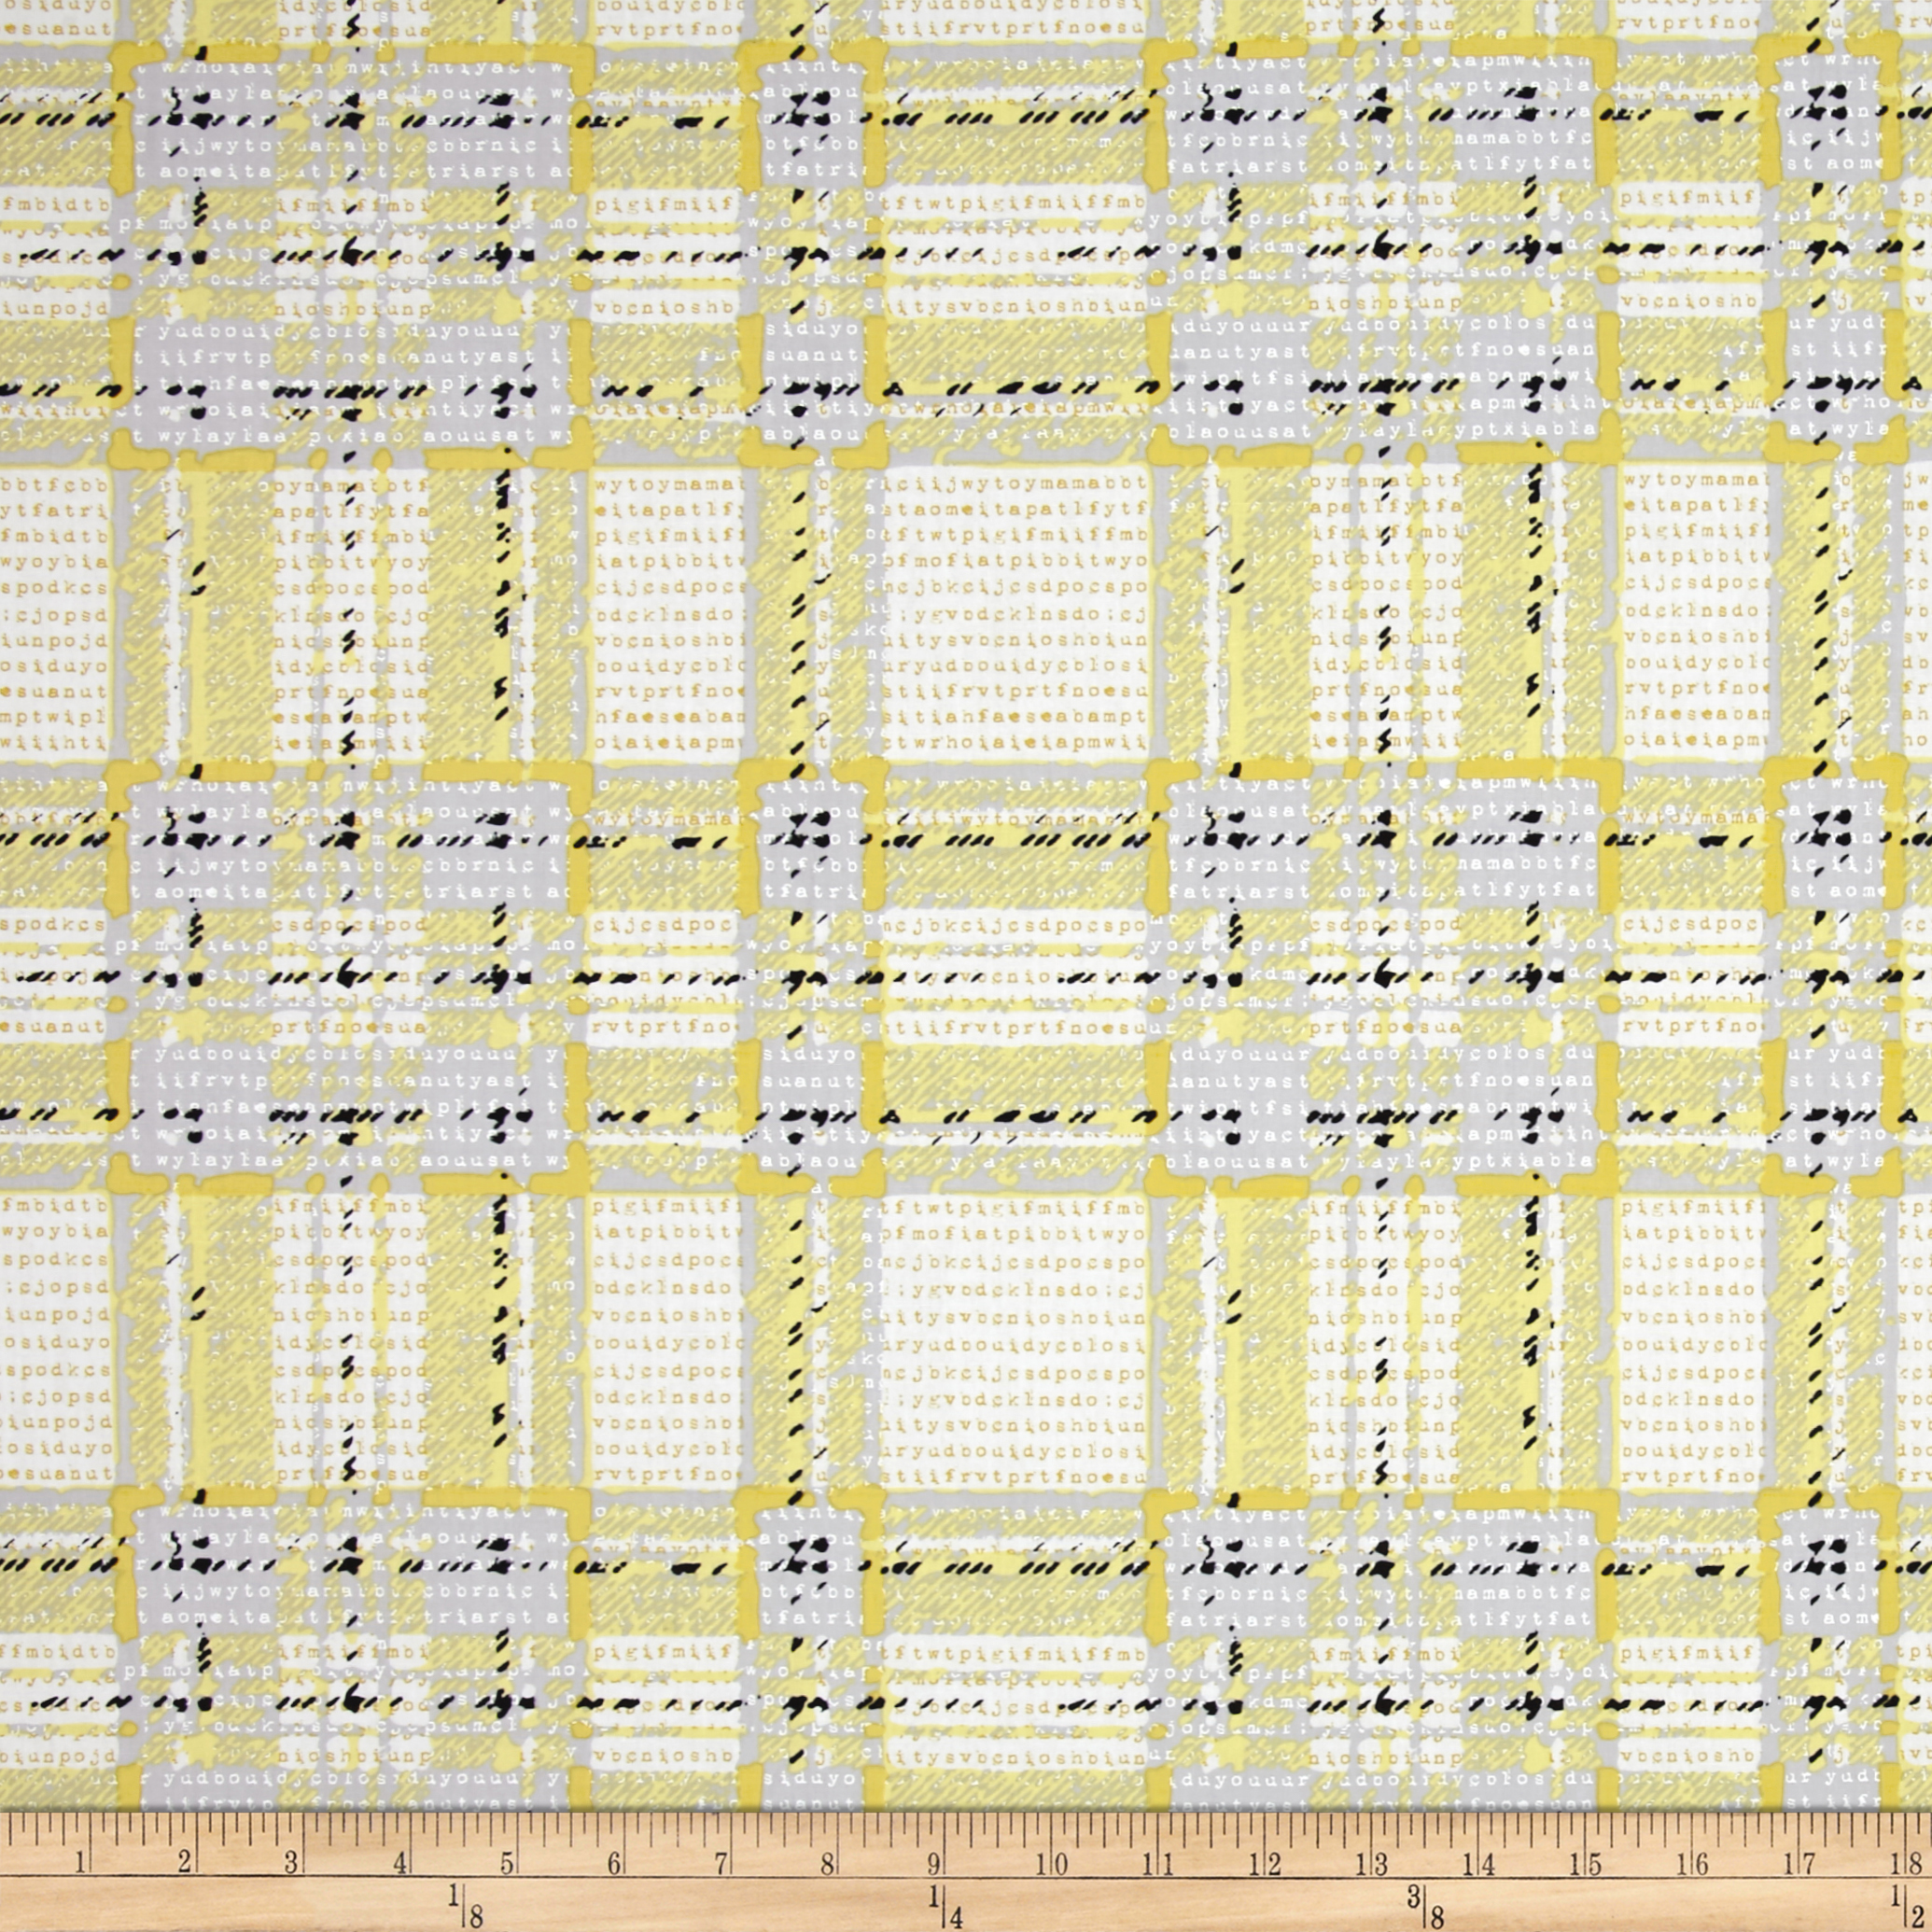 Art Gallery Pastel Thrift Type-Plaid Fabric by Art Gallery in USA